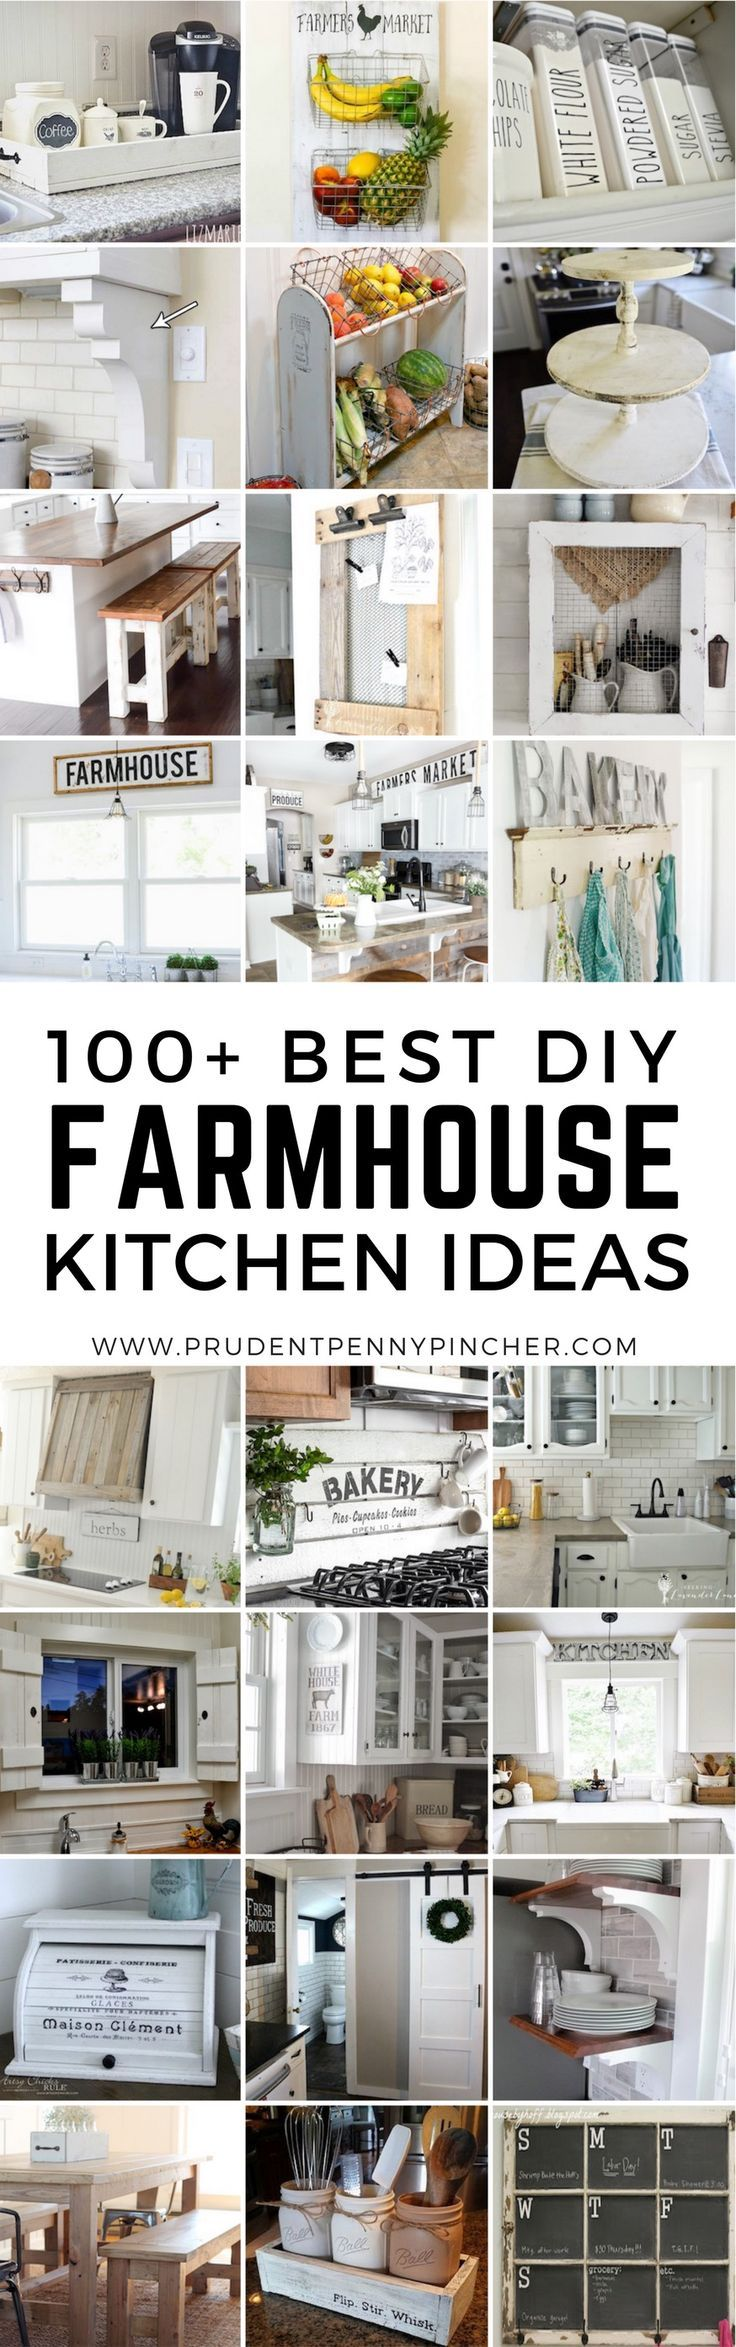 100 Best Farmhouse Kitchen DIY Ideas